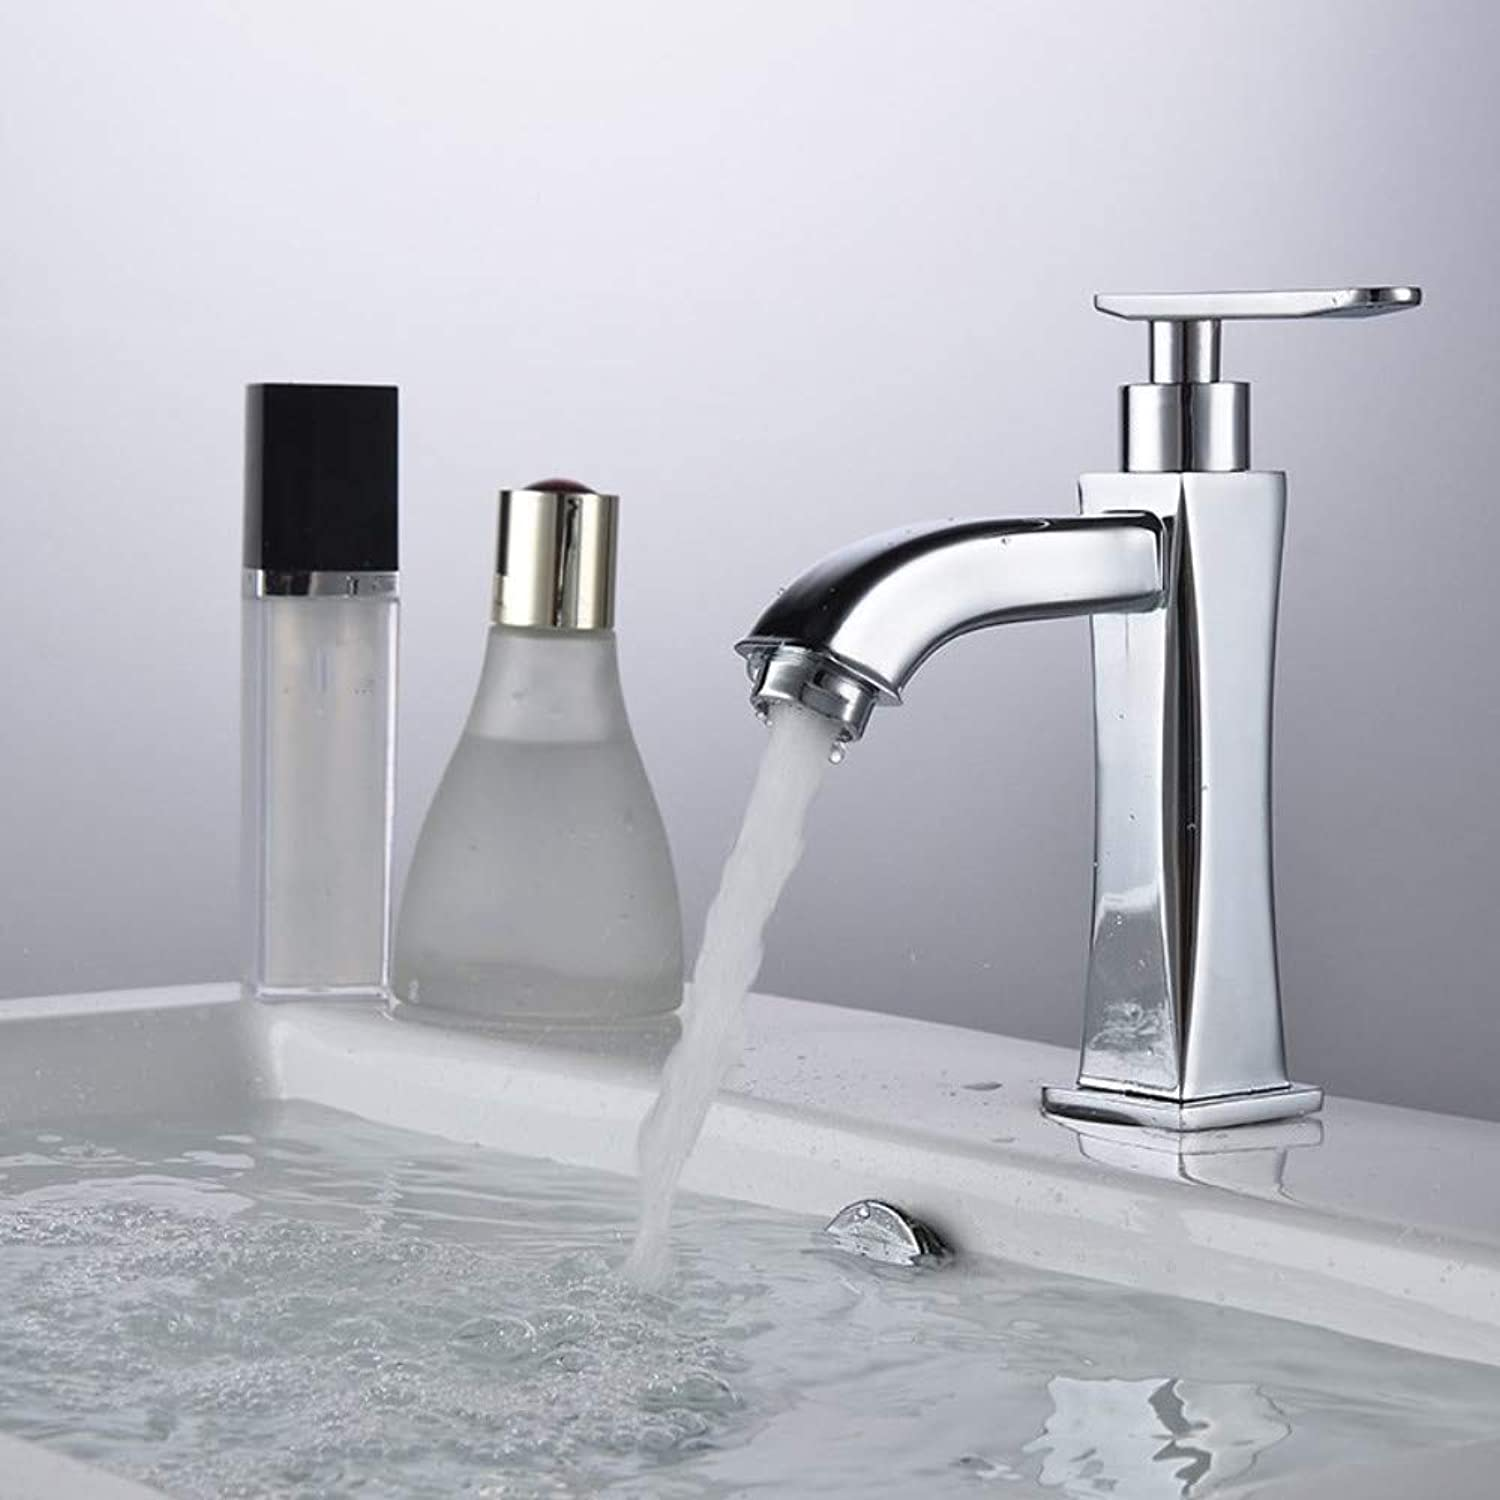 redOOY Taps Faucet All Copper Basin Faucet???Copper Basin Faucet Single Cold Faucet Single Bathroom Cabinet